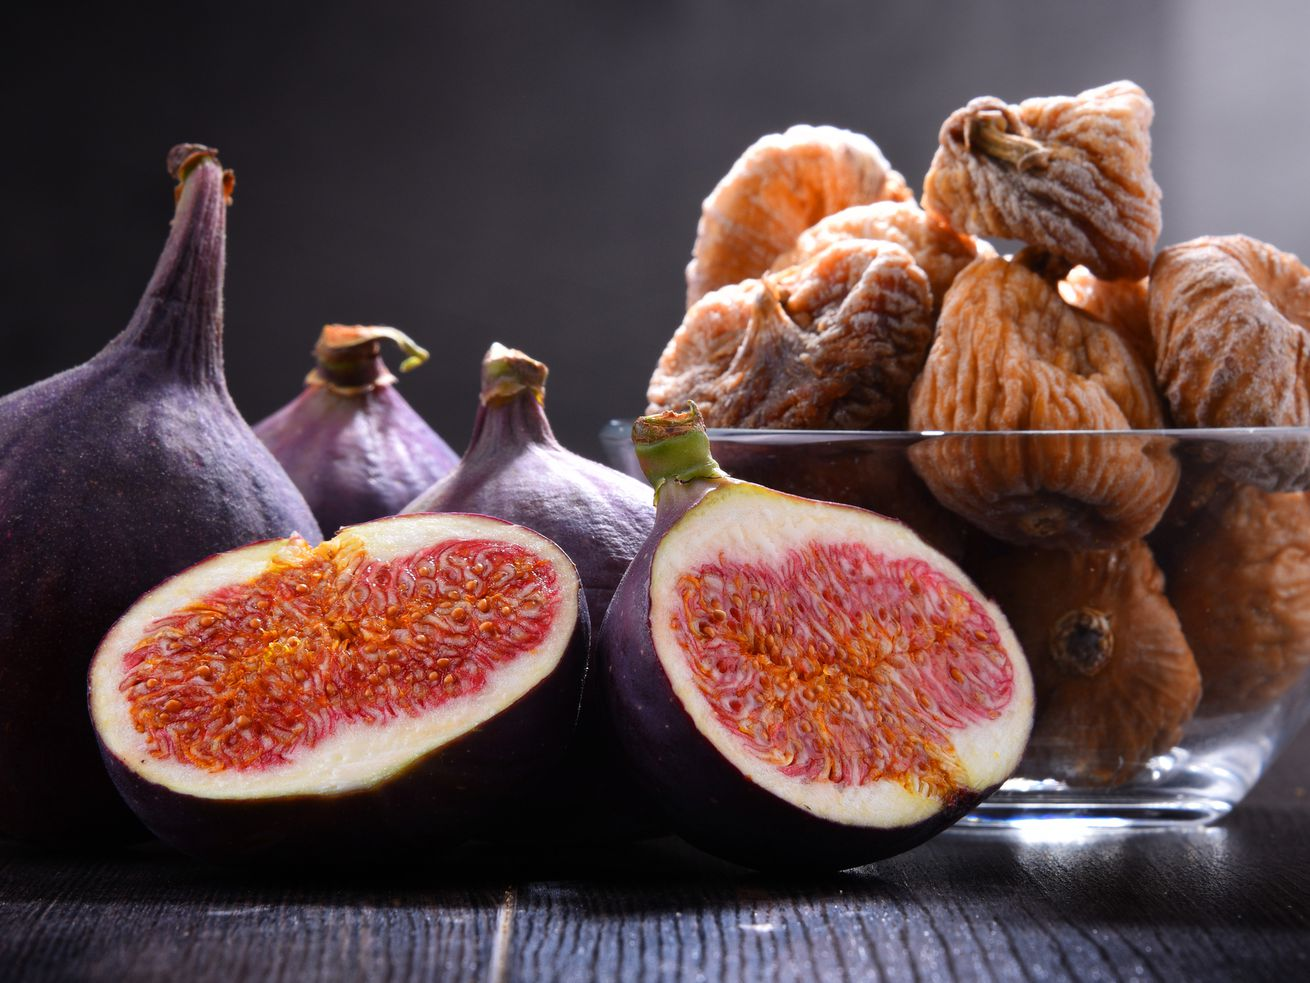 Fresh figs are quite perishable, so plan on eating them shortly after purchase. Choose figs that are rich in color, firm, plump and sweet-smelling. Select dried figs that are somewhat soft, mold-free and have a pleasant fragrance.